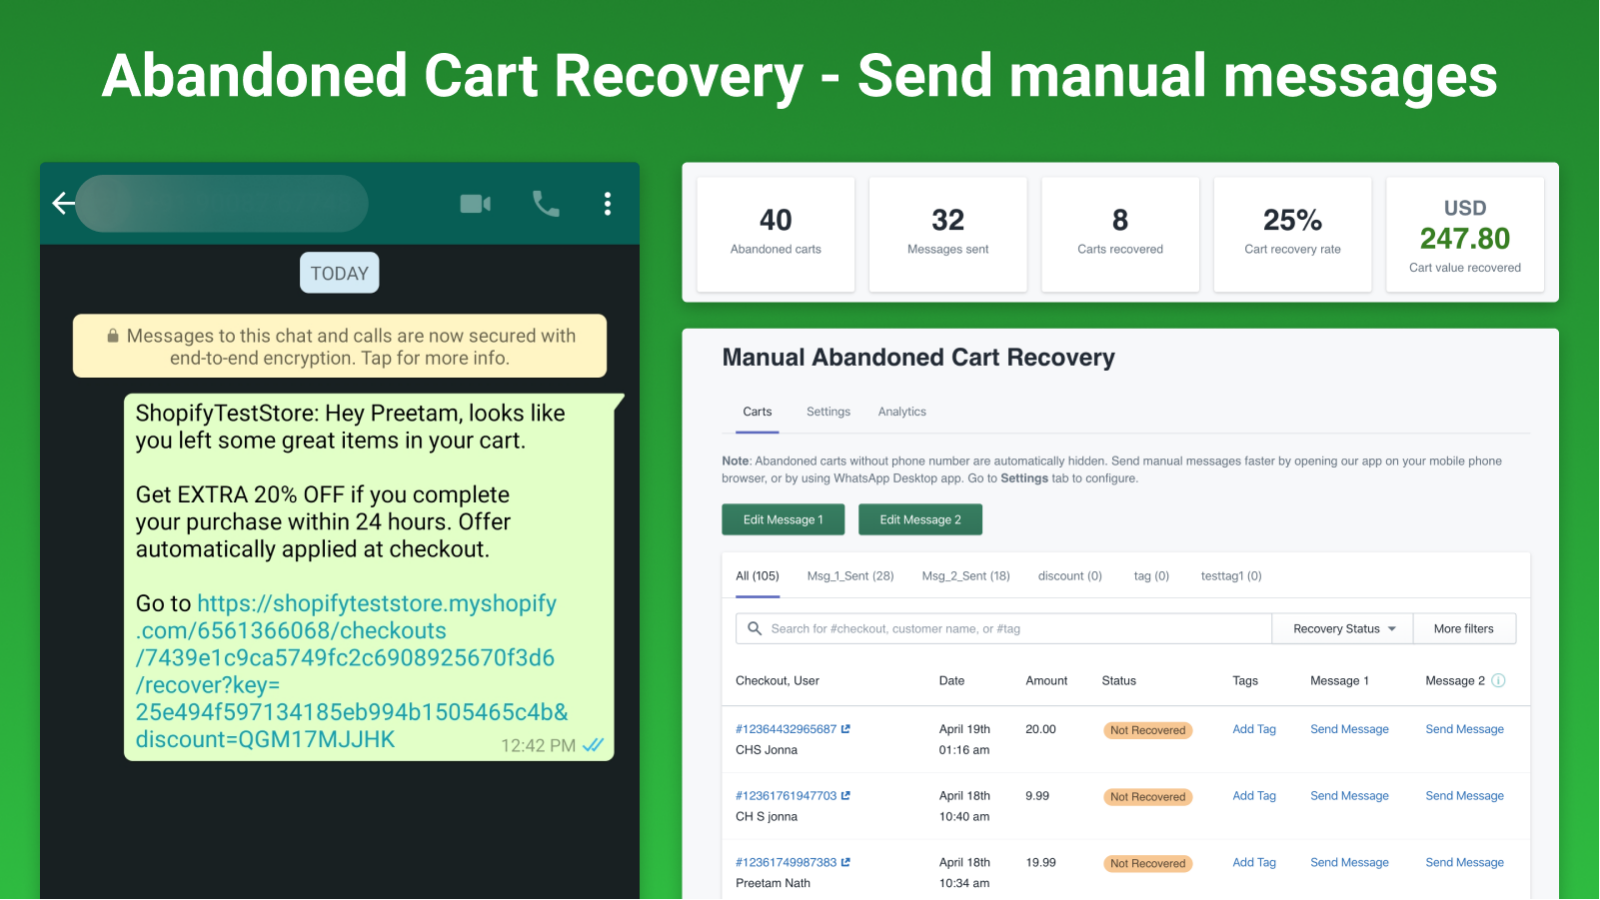 whatsapp abandoned cart recovery messages for shopify stores